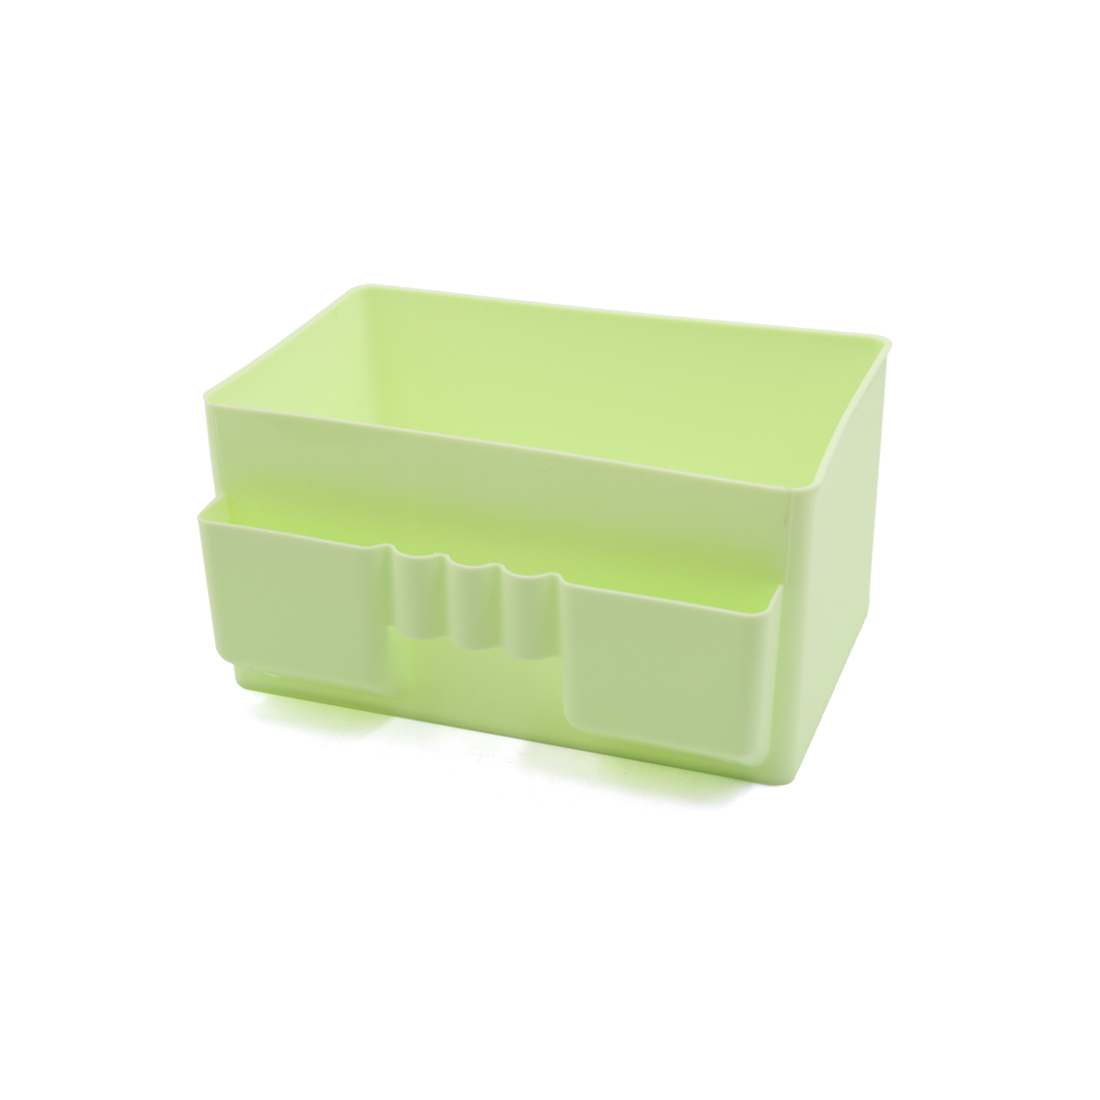 Green Lipsticks Lotion Cleanser Makeup Brush Cosmetic Holder Storage Container